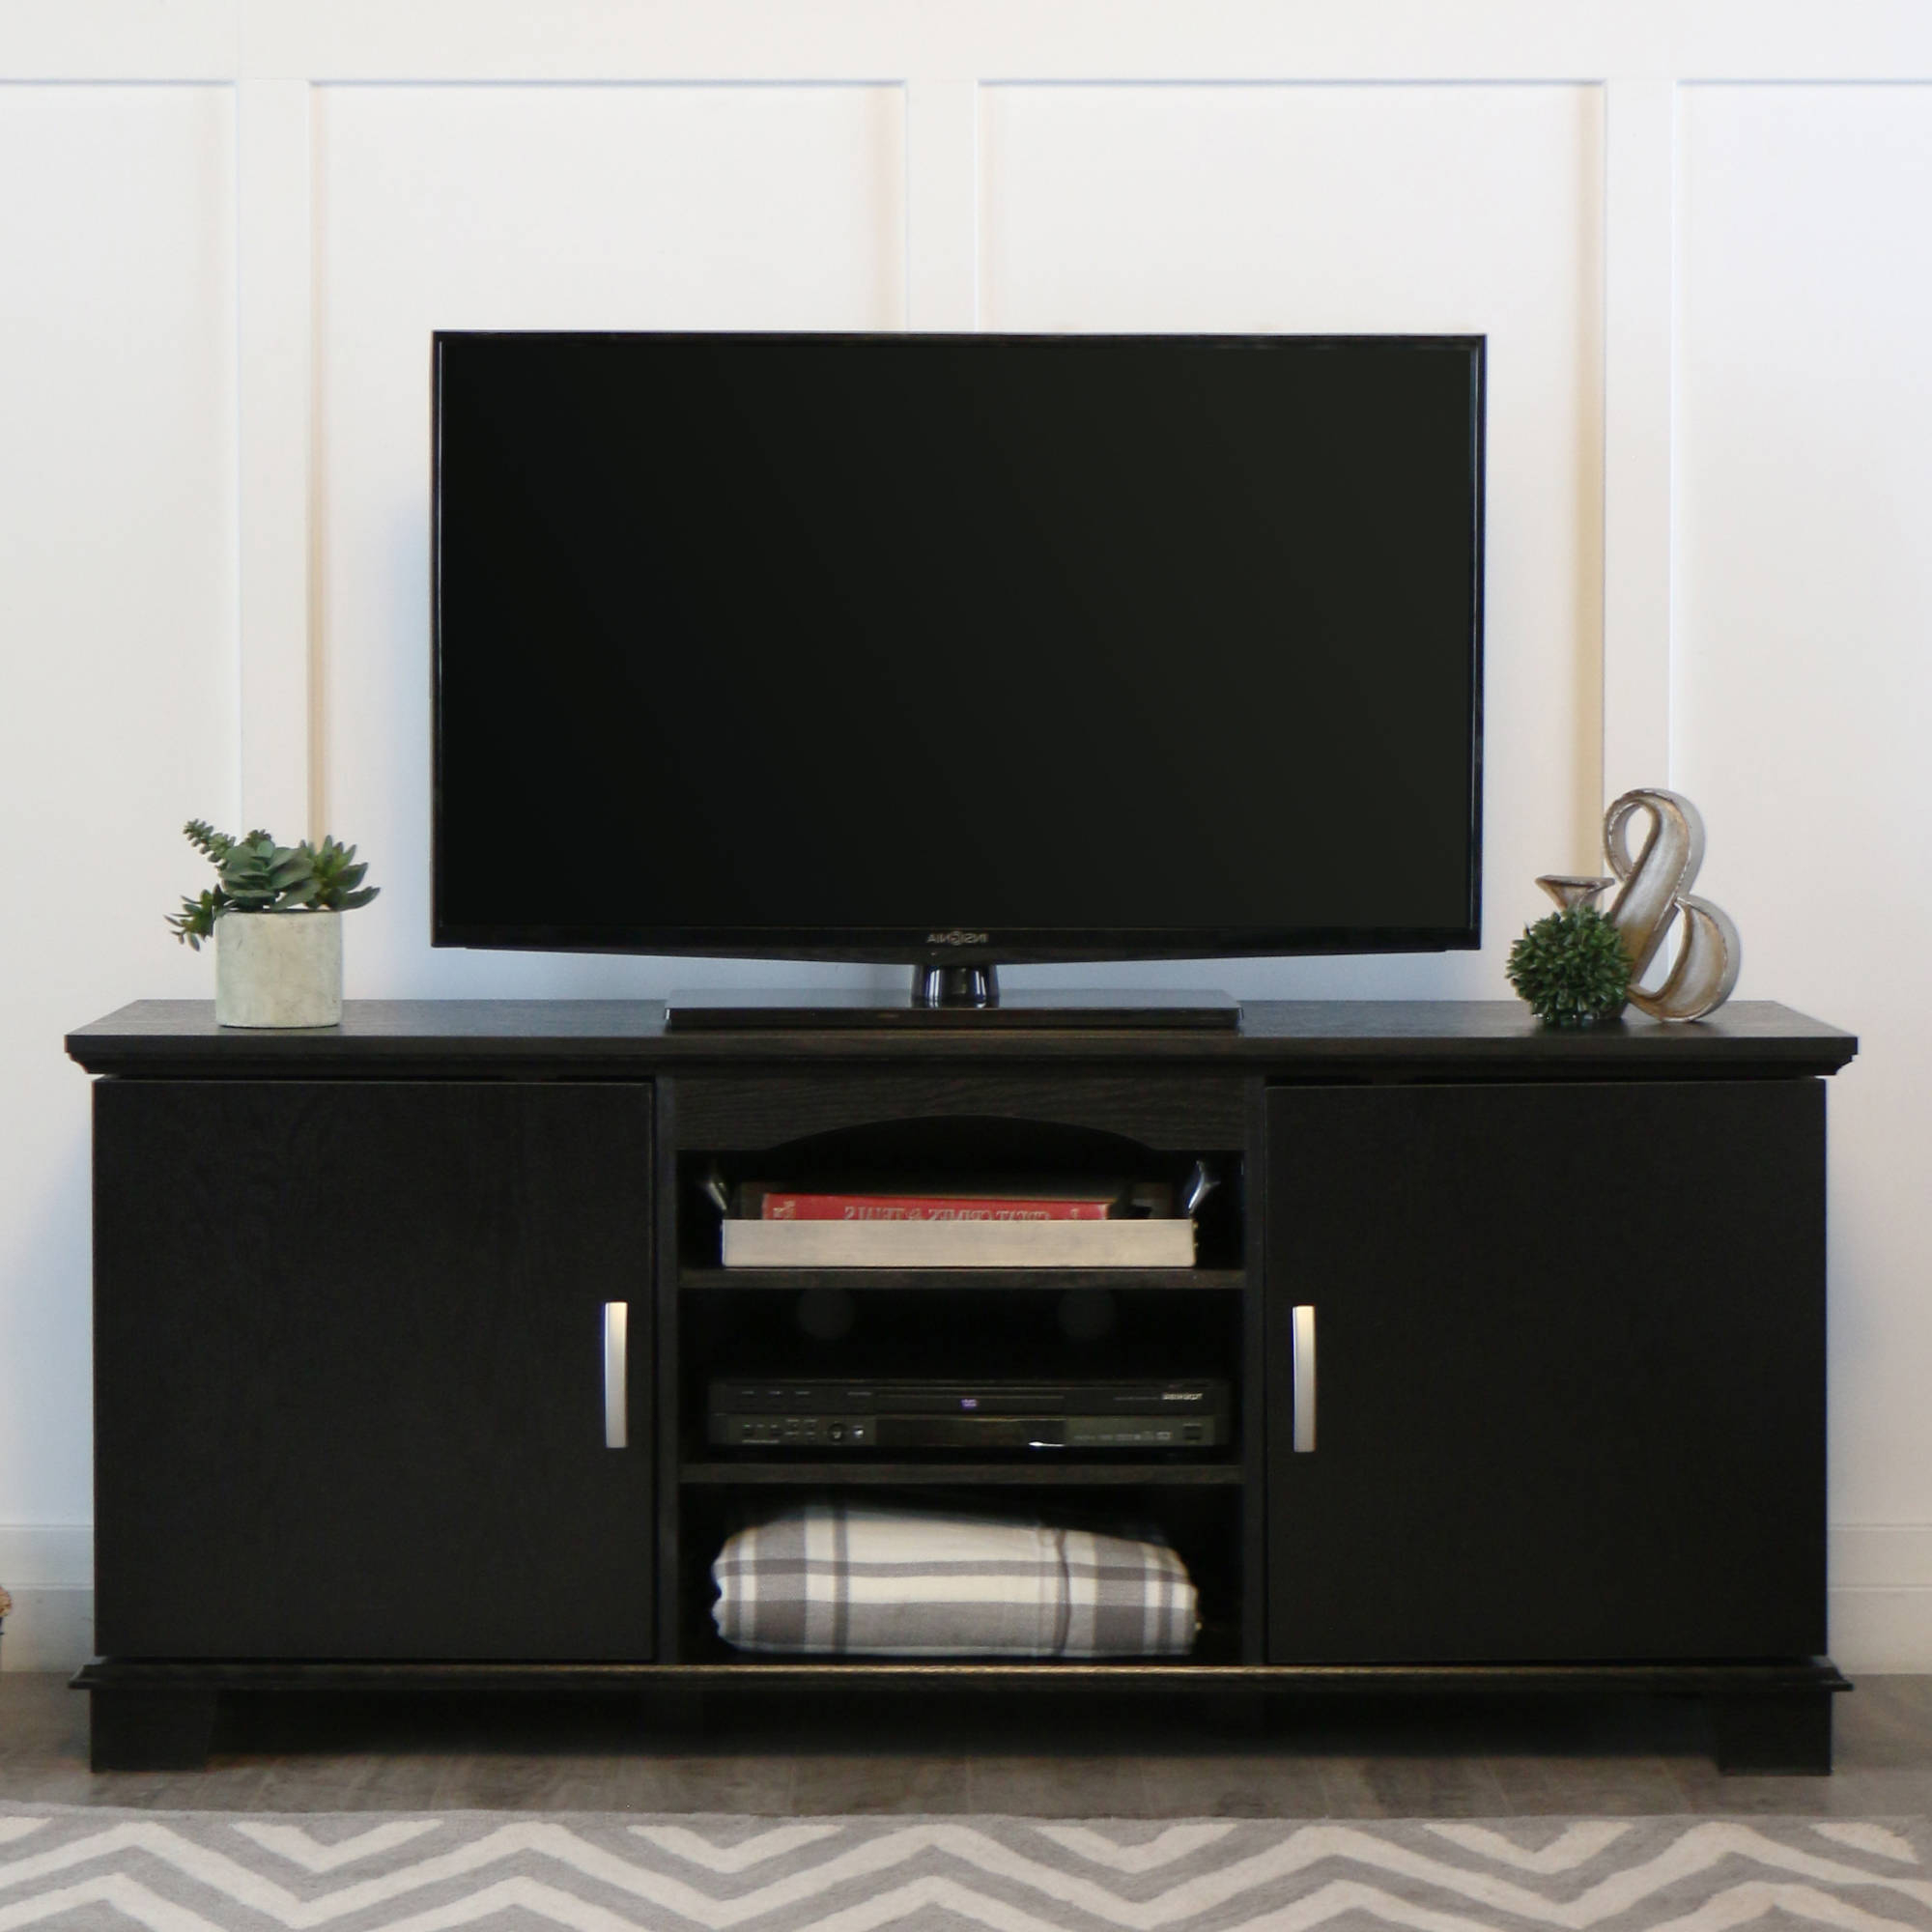 Corner Tv Stand Amazon Unique Stands Extra Tall Entertainment Center Throughout 2018 Black Corner Tv Stands For Tvs Up To (View 5 of 20)